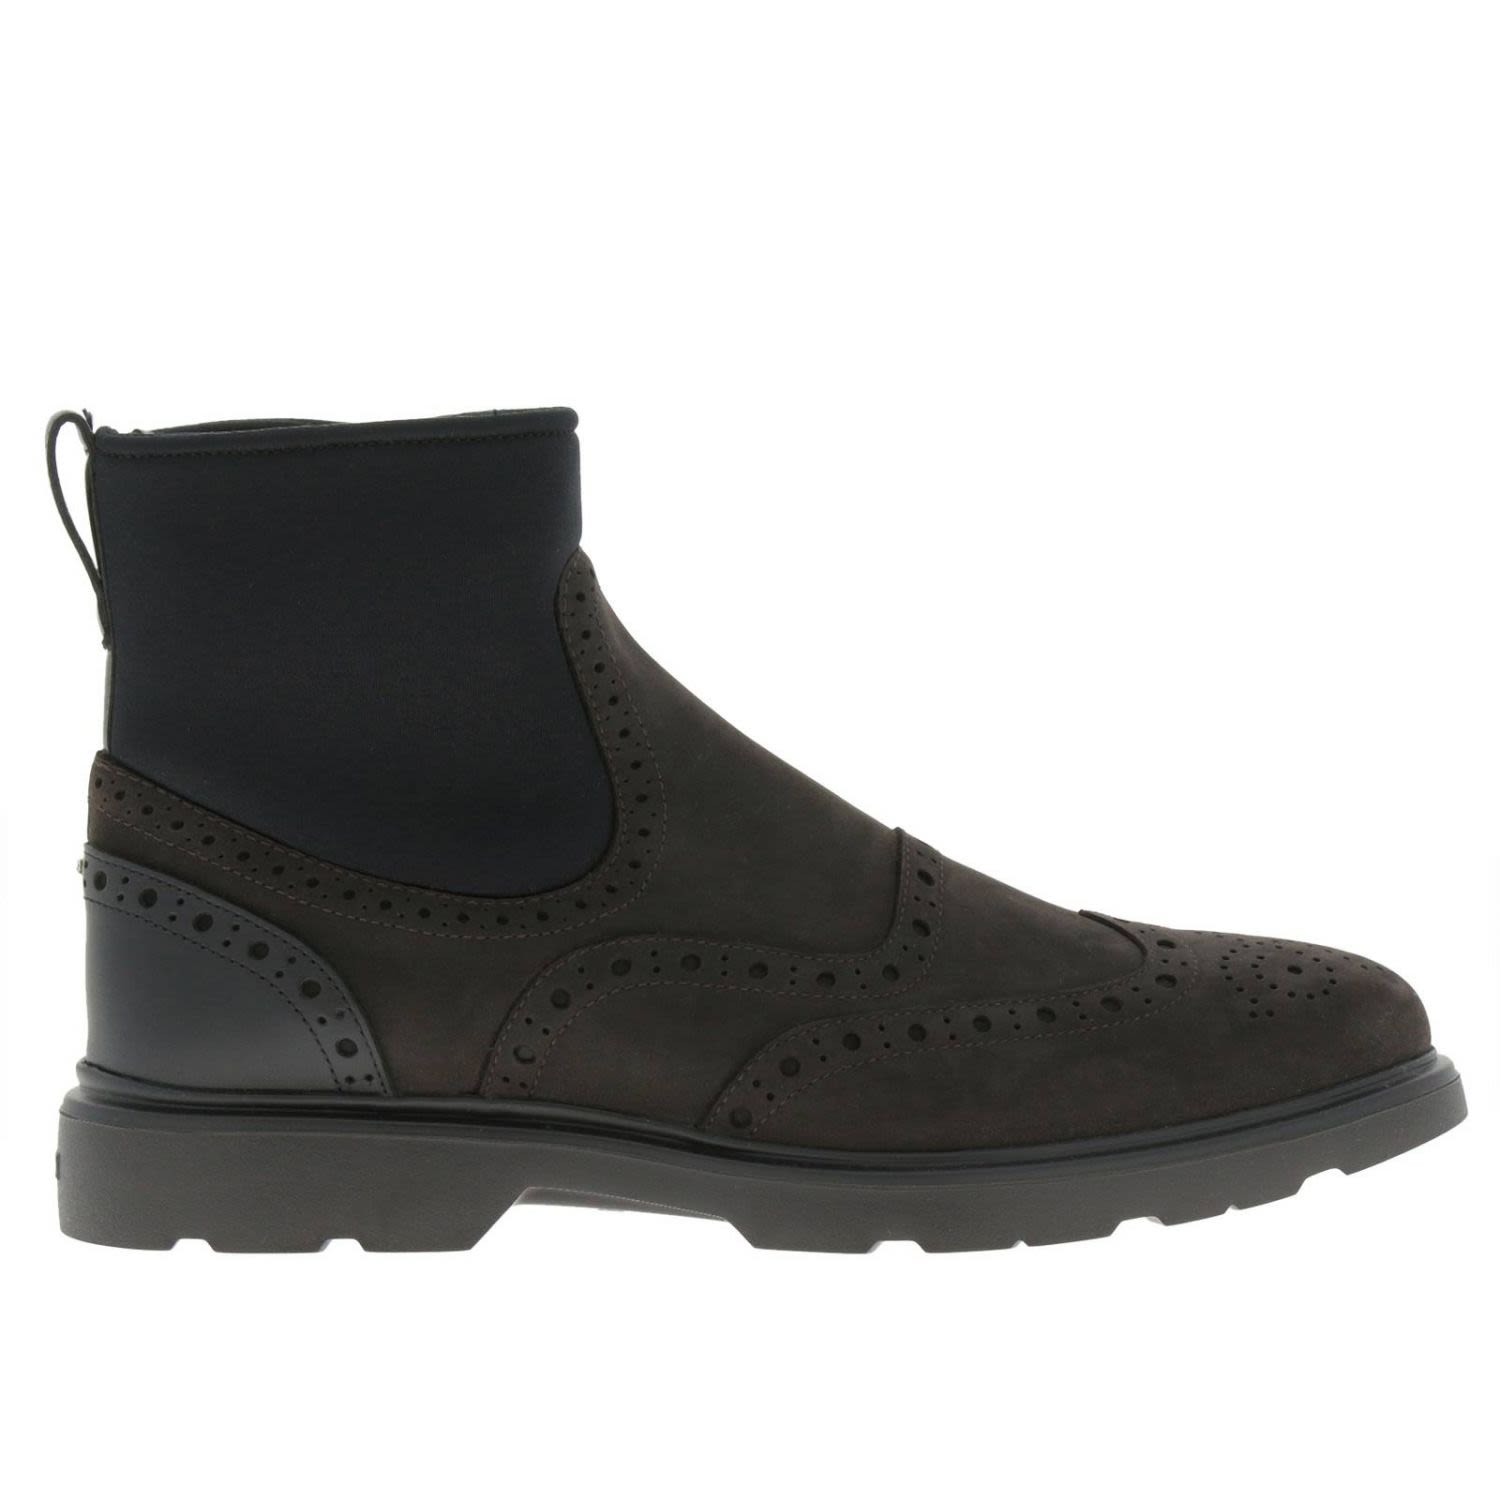 BOOTS SHOES MEN HOGAN